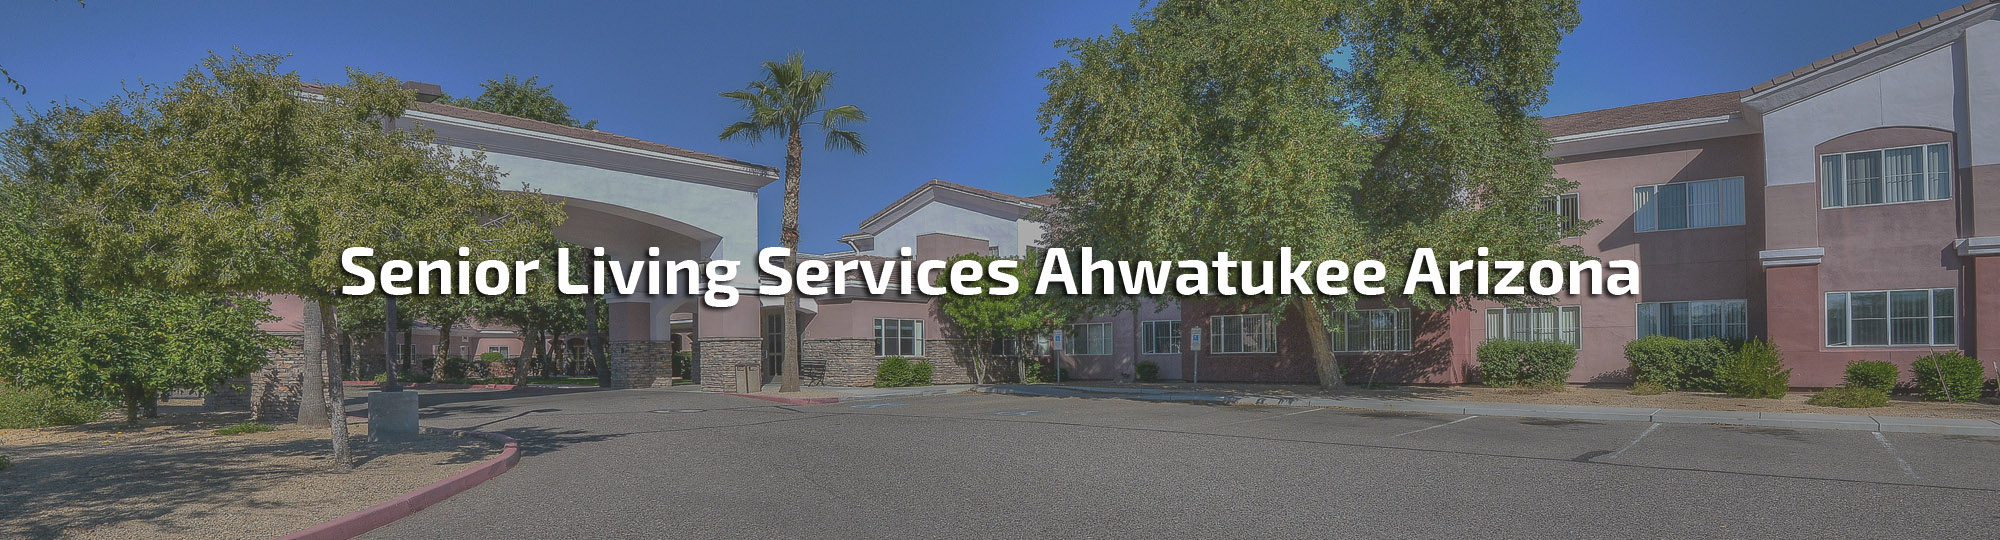 Senior Living Services Ahwatukee Arizona